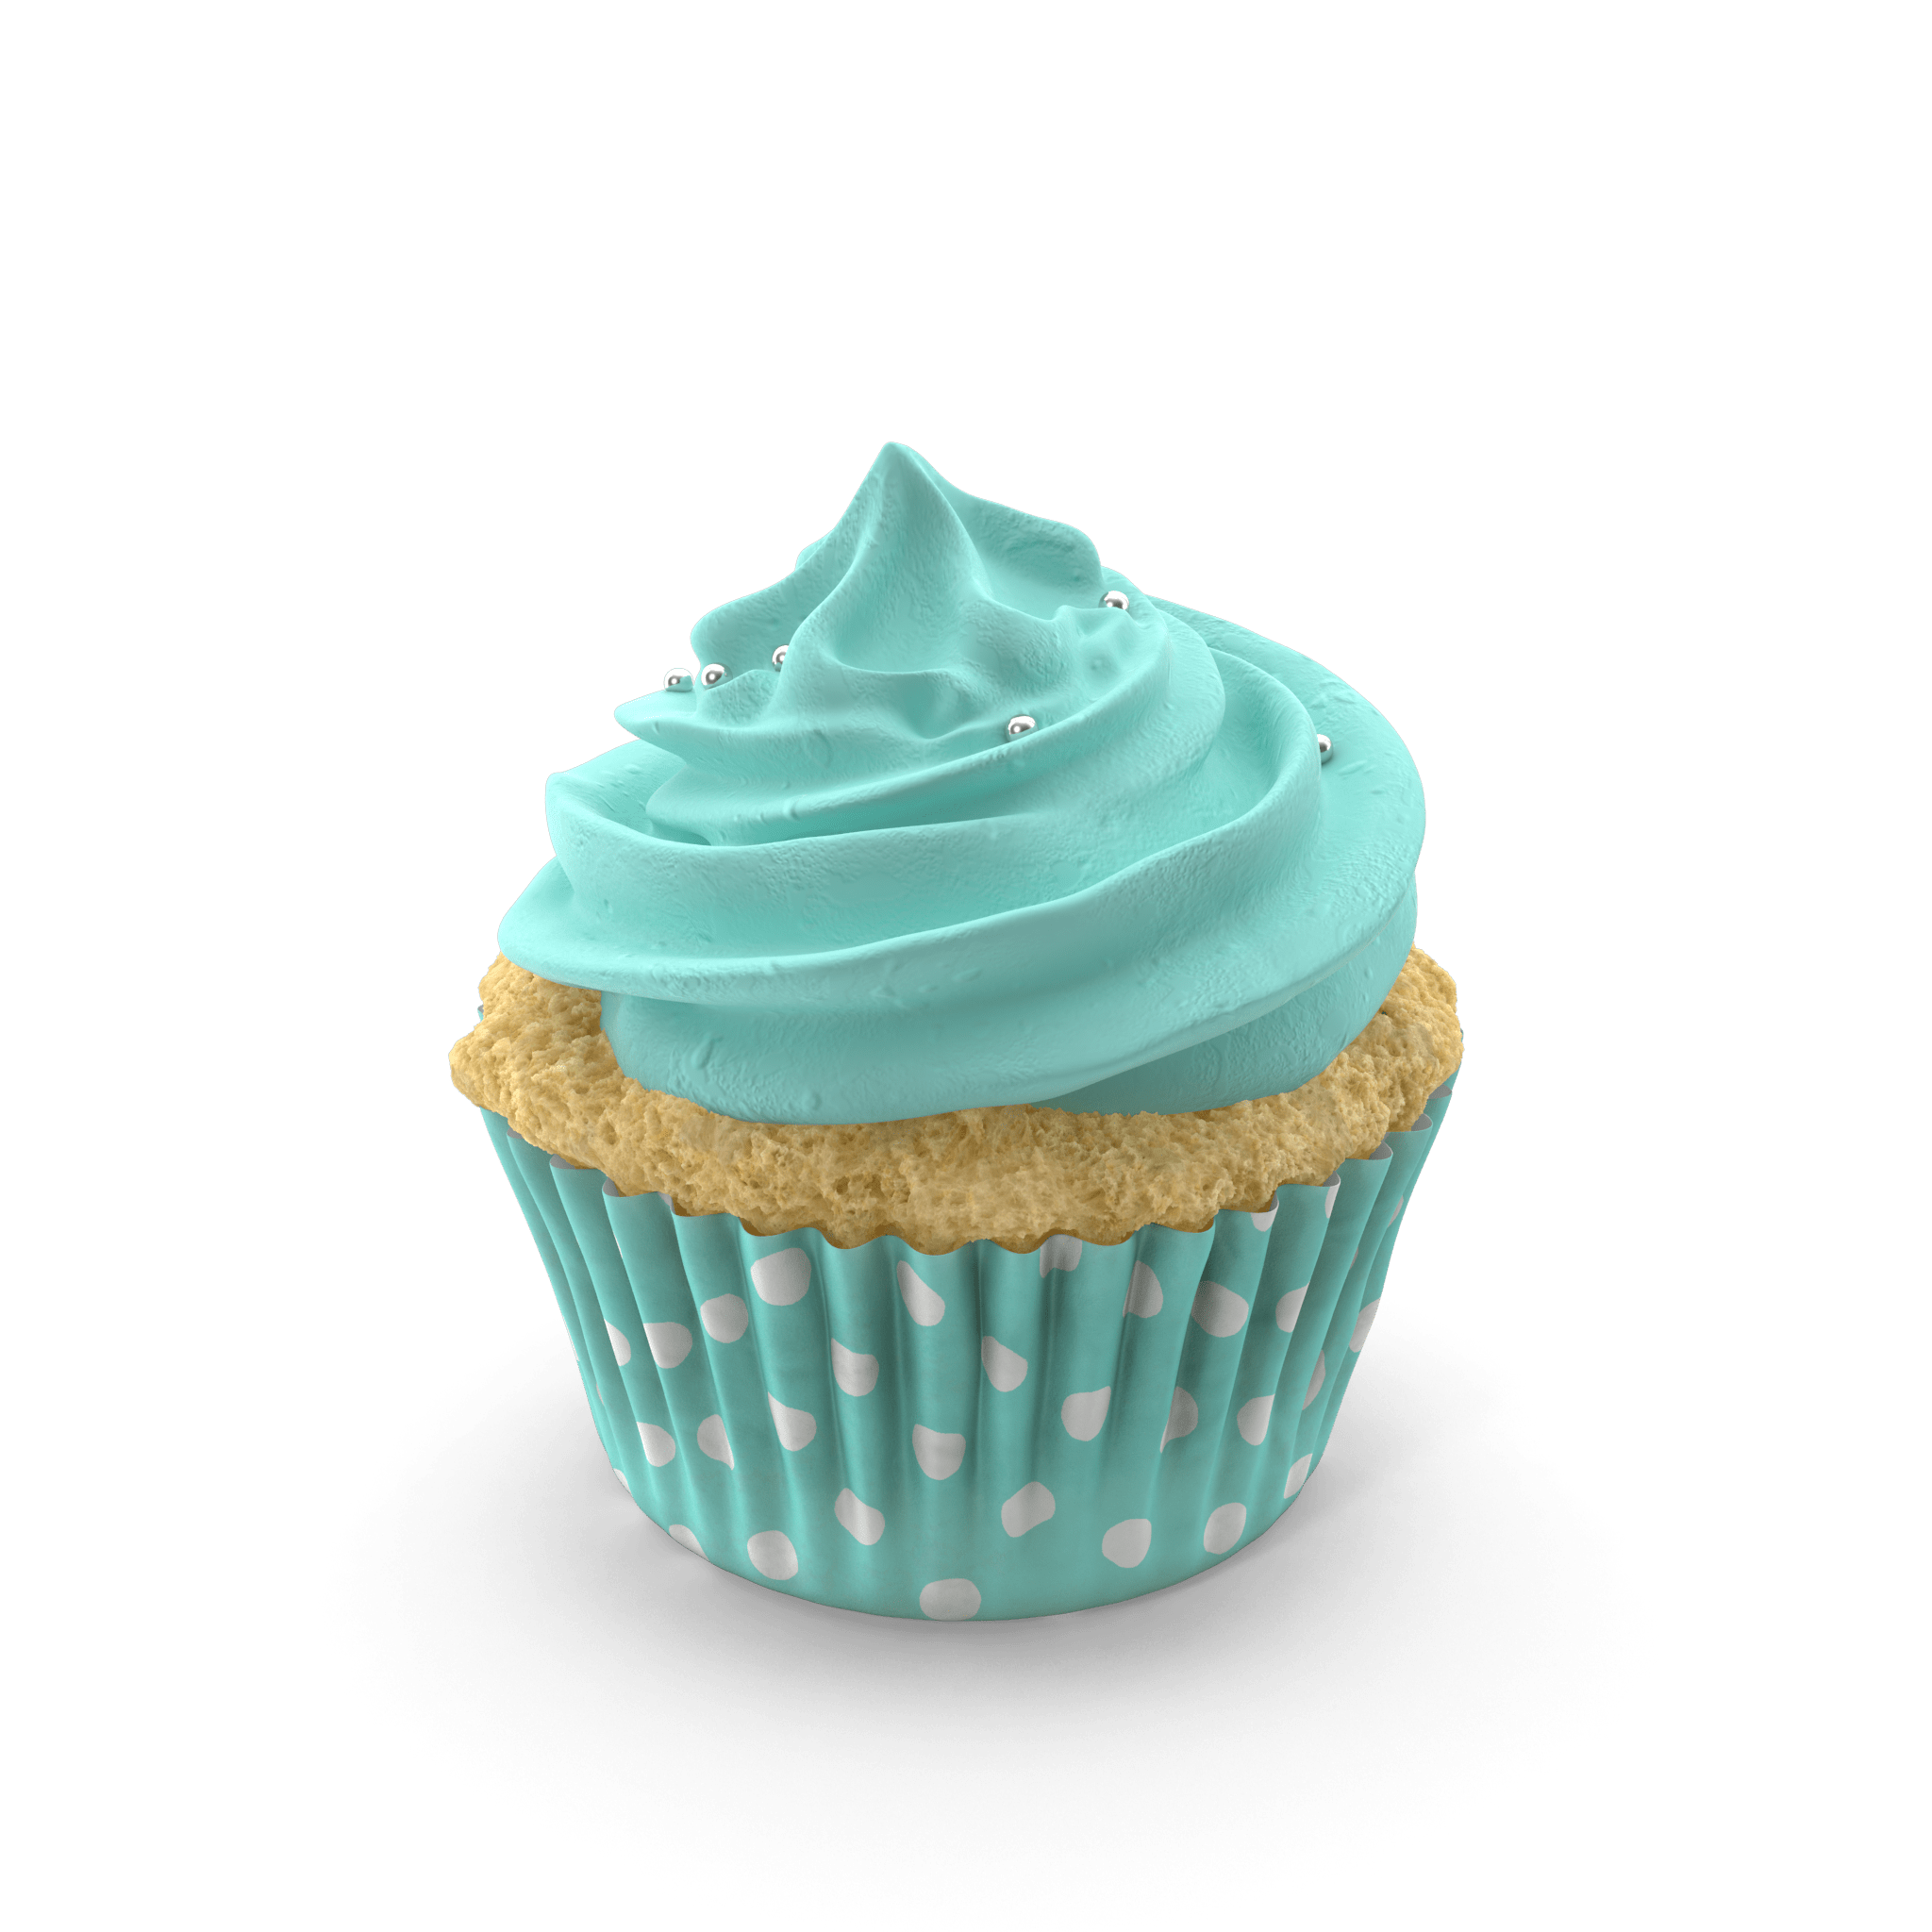 White cupcake with blue icing and wrapper